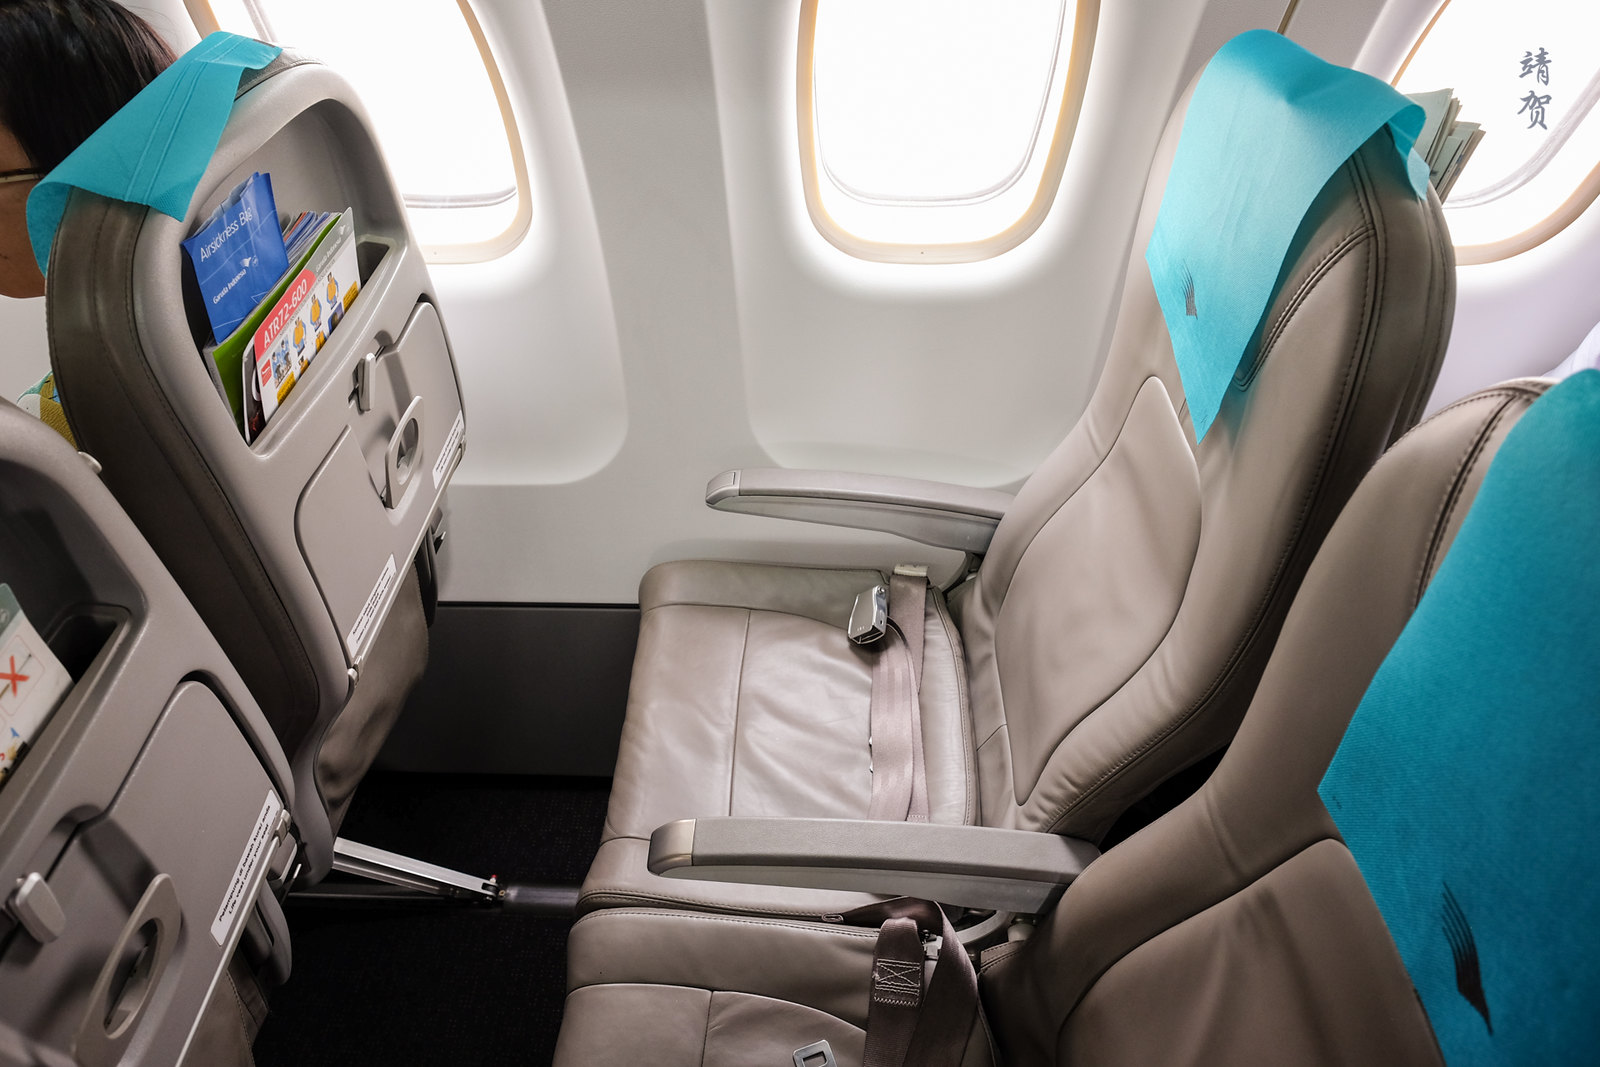 Economy class seats on the ATR72